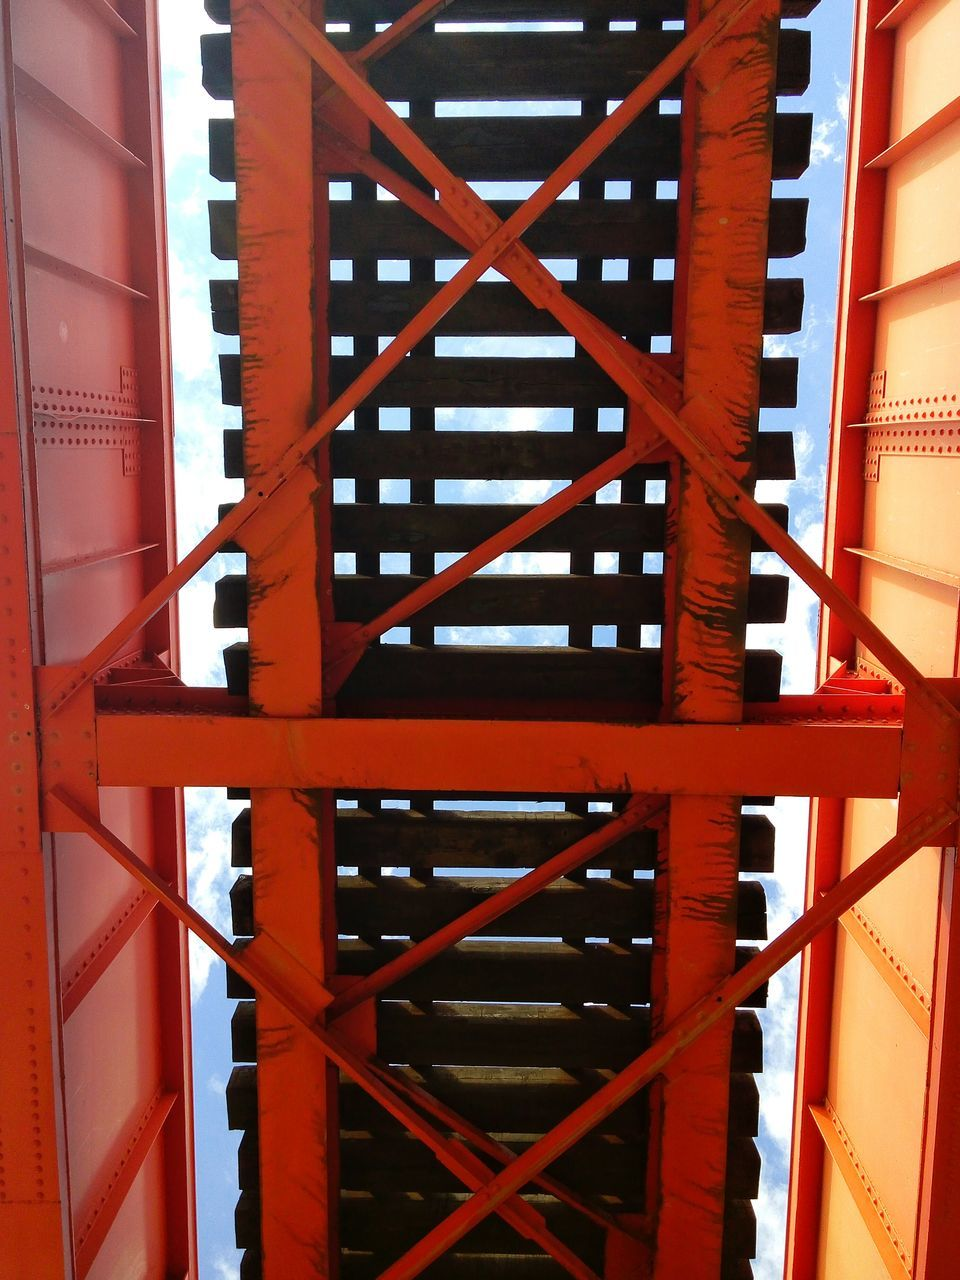 architecture, built structure, steps and staircases, building exterior, fire escape, no people, day, steps, outdoors, red, close-up